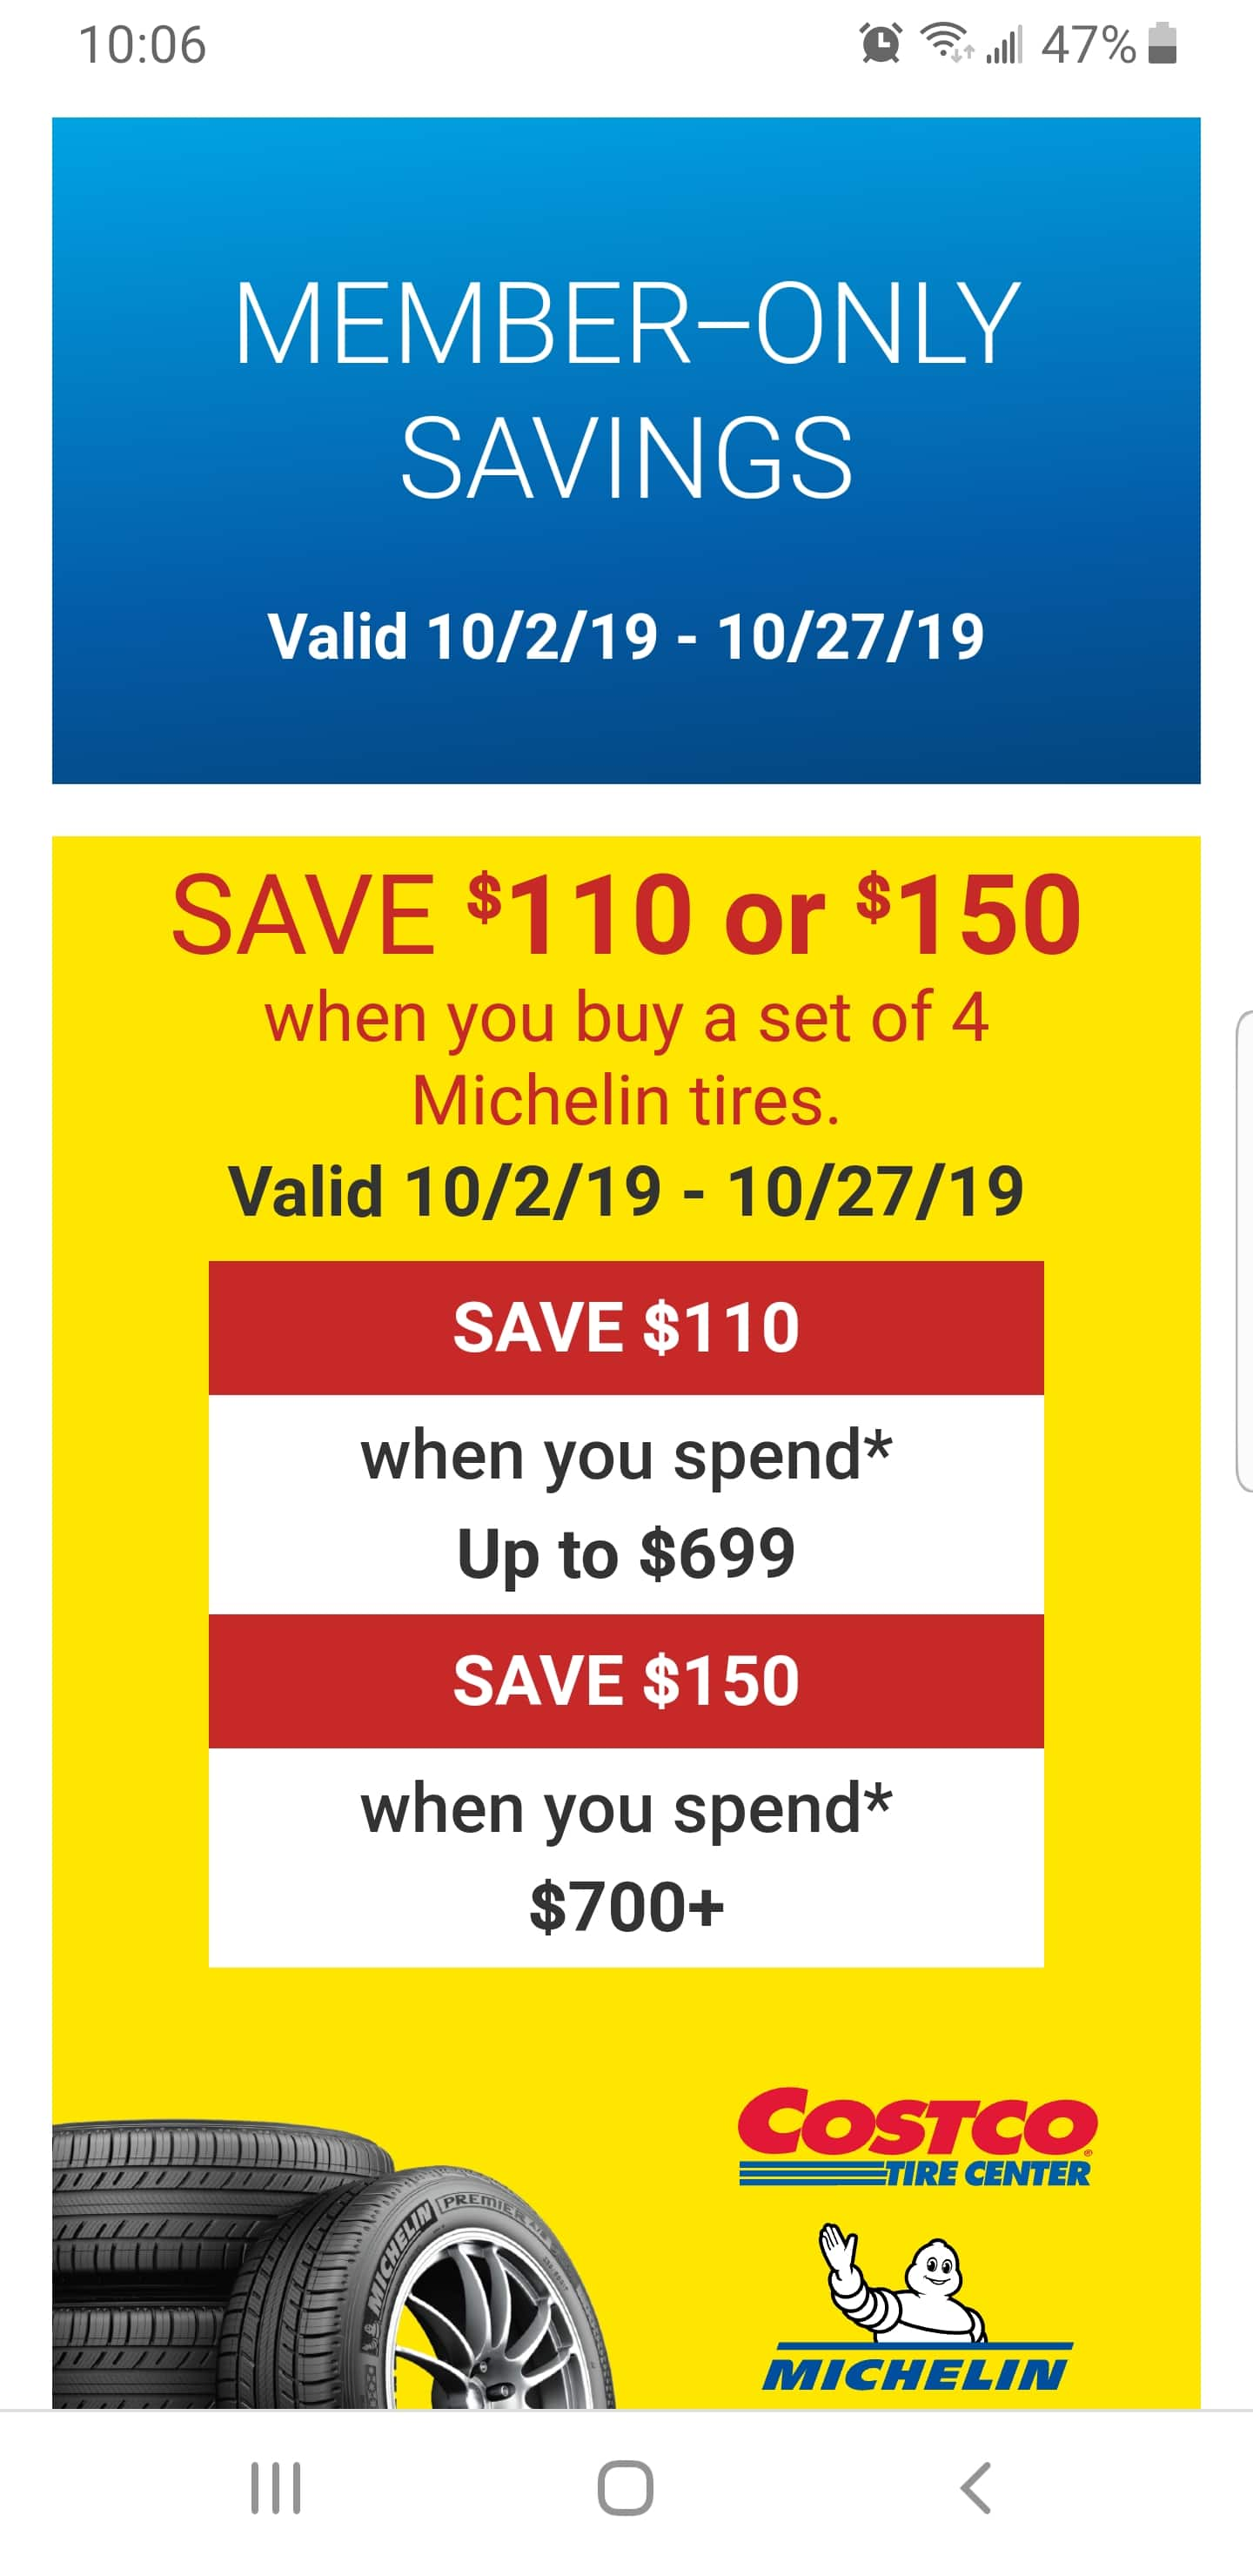 SAVE $150 when you buy a set of 4 Michelin tires. Valid 10/2/19 - 10/27/19 - when you spend* $700+ @costco